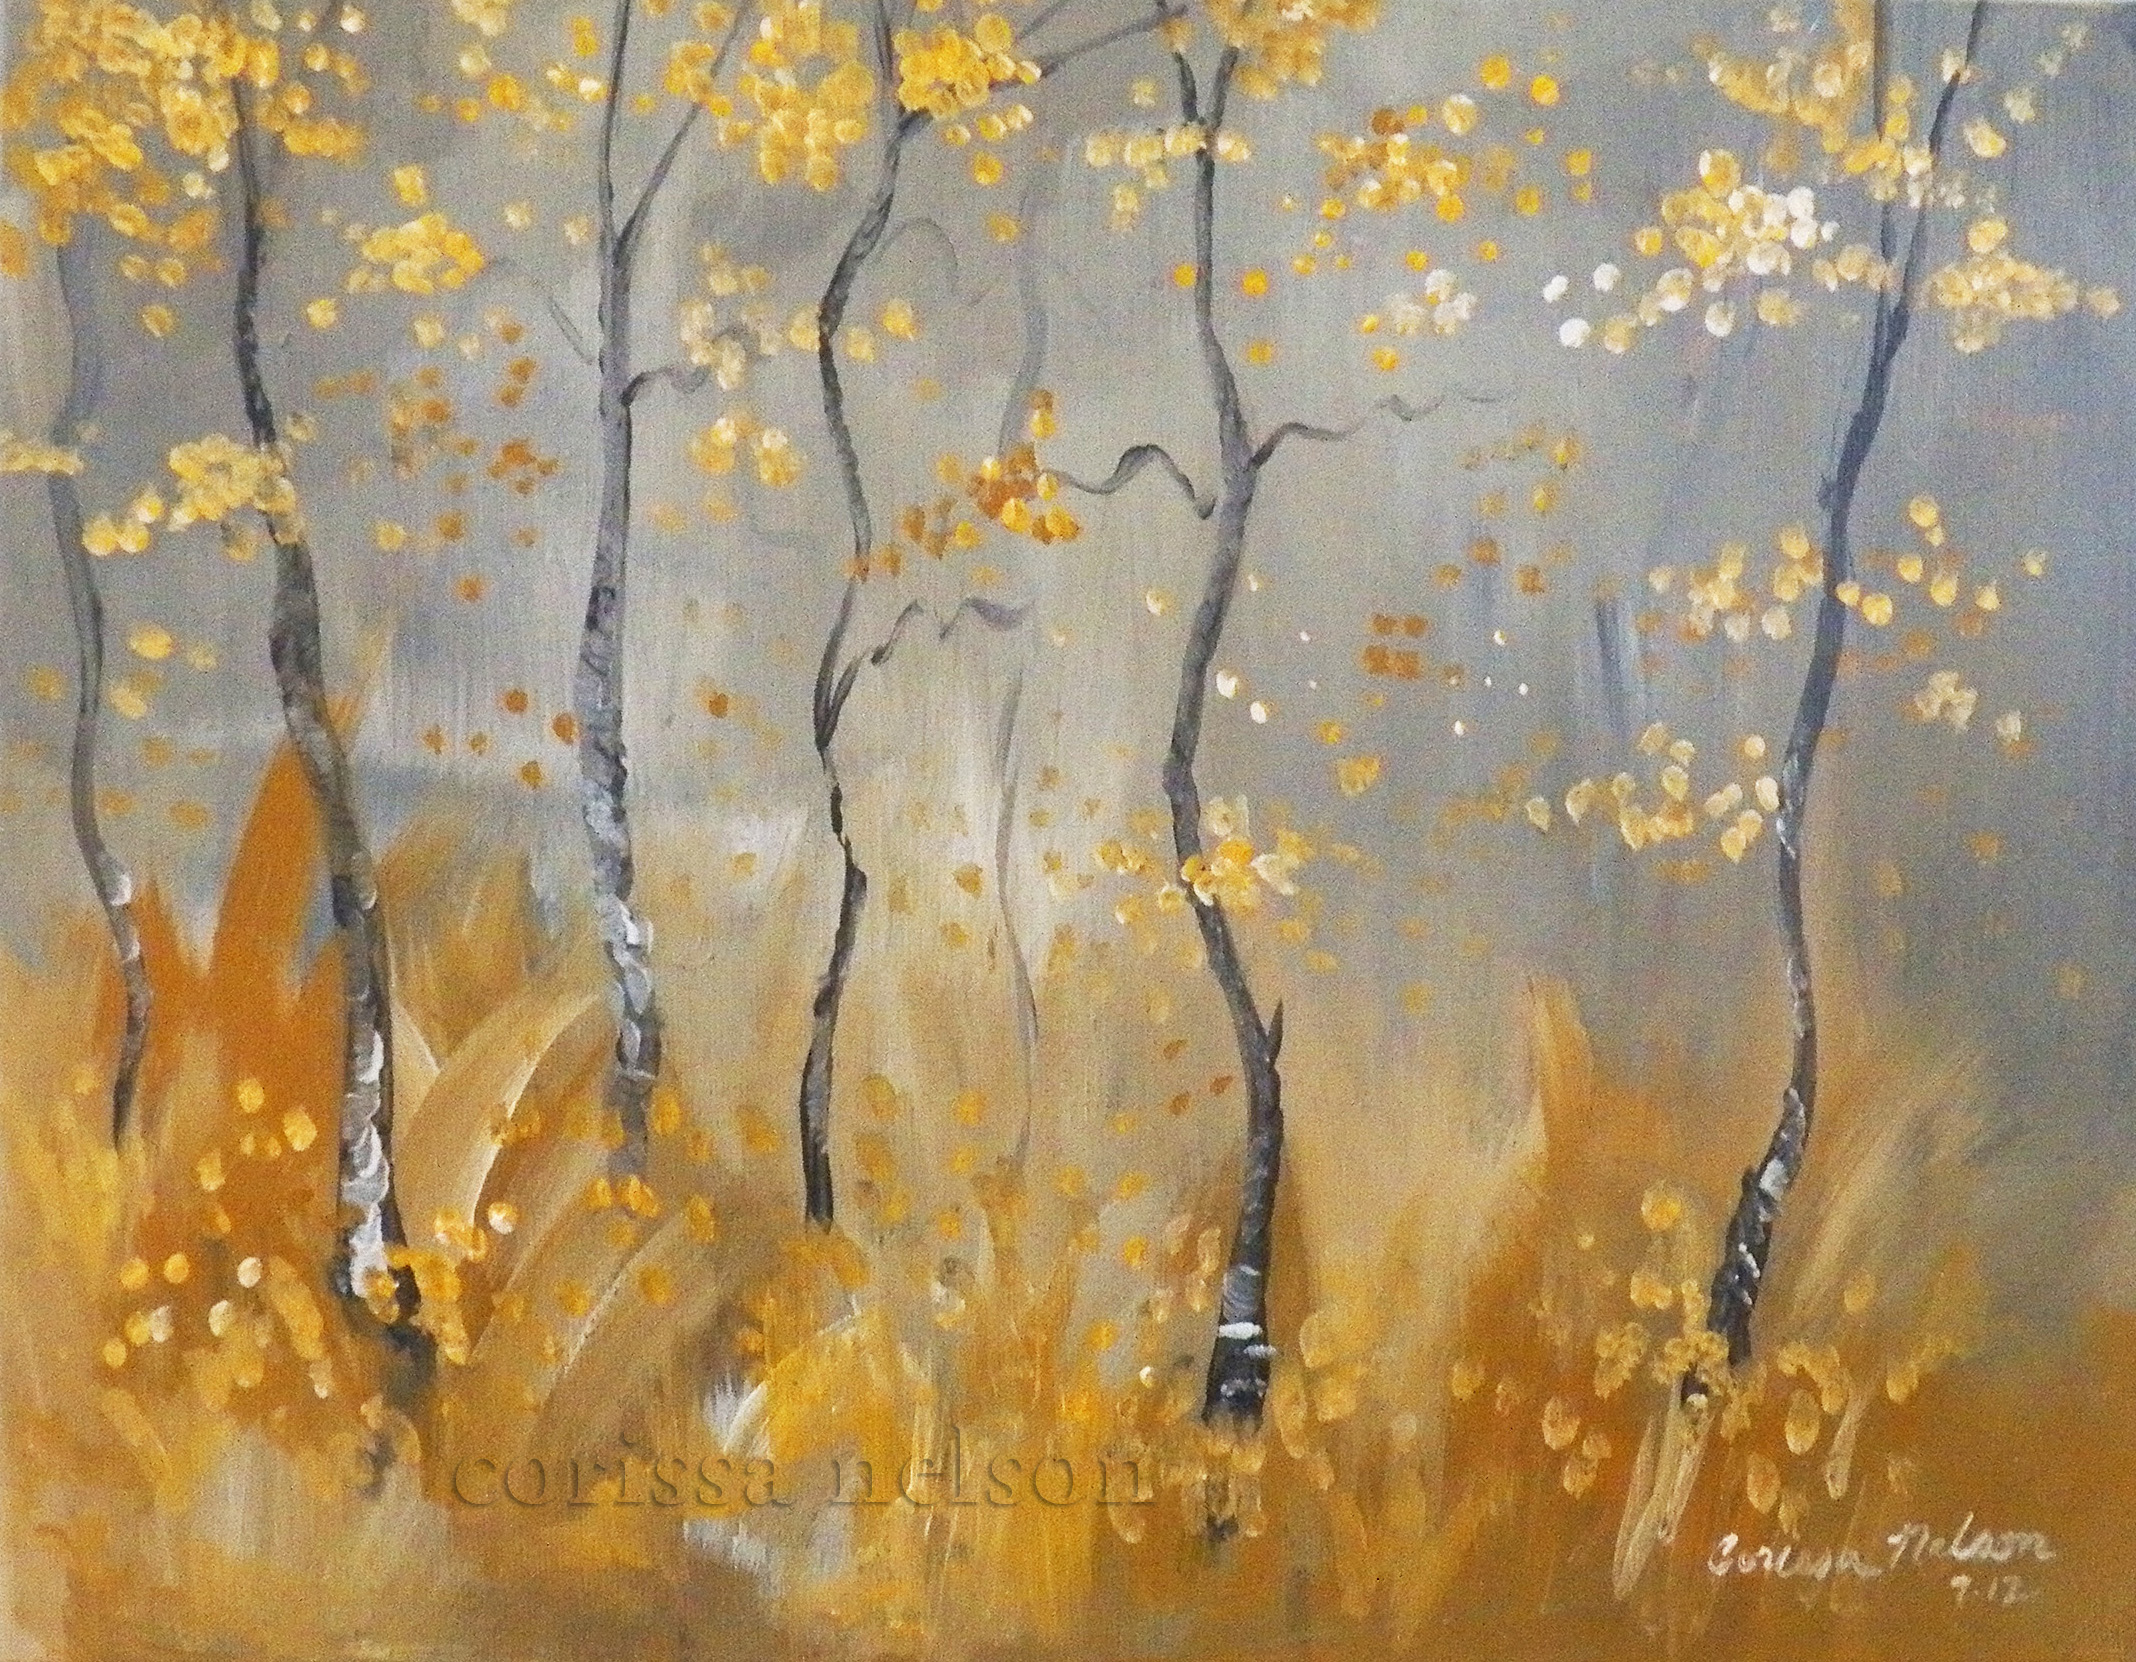 Autumn Grey and Yellow Woods